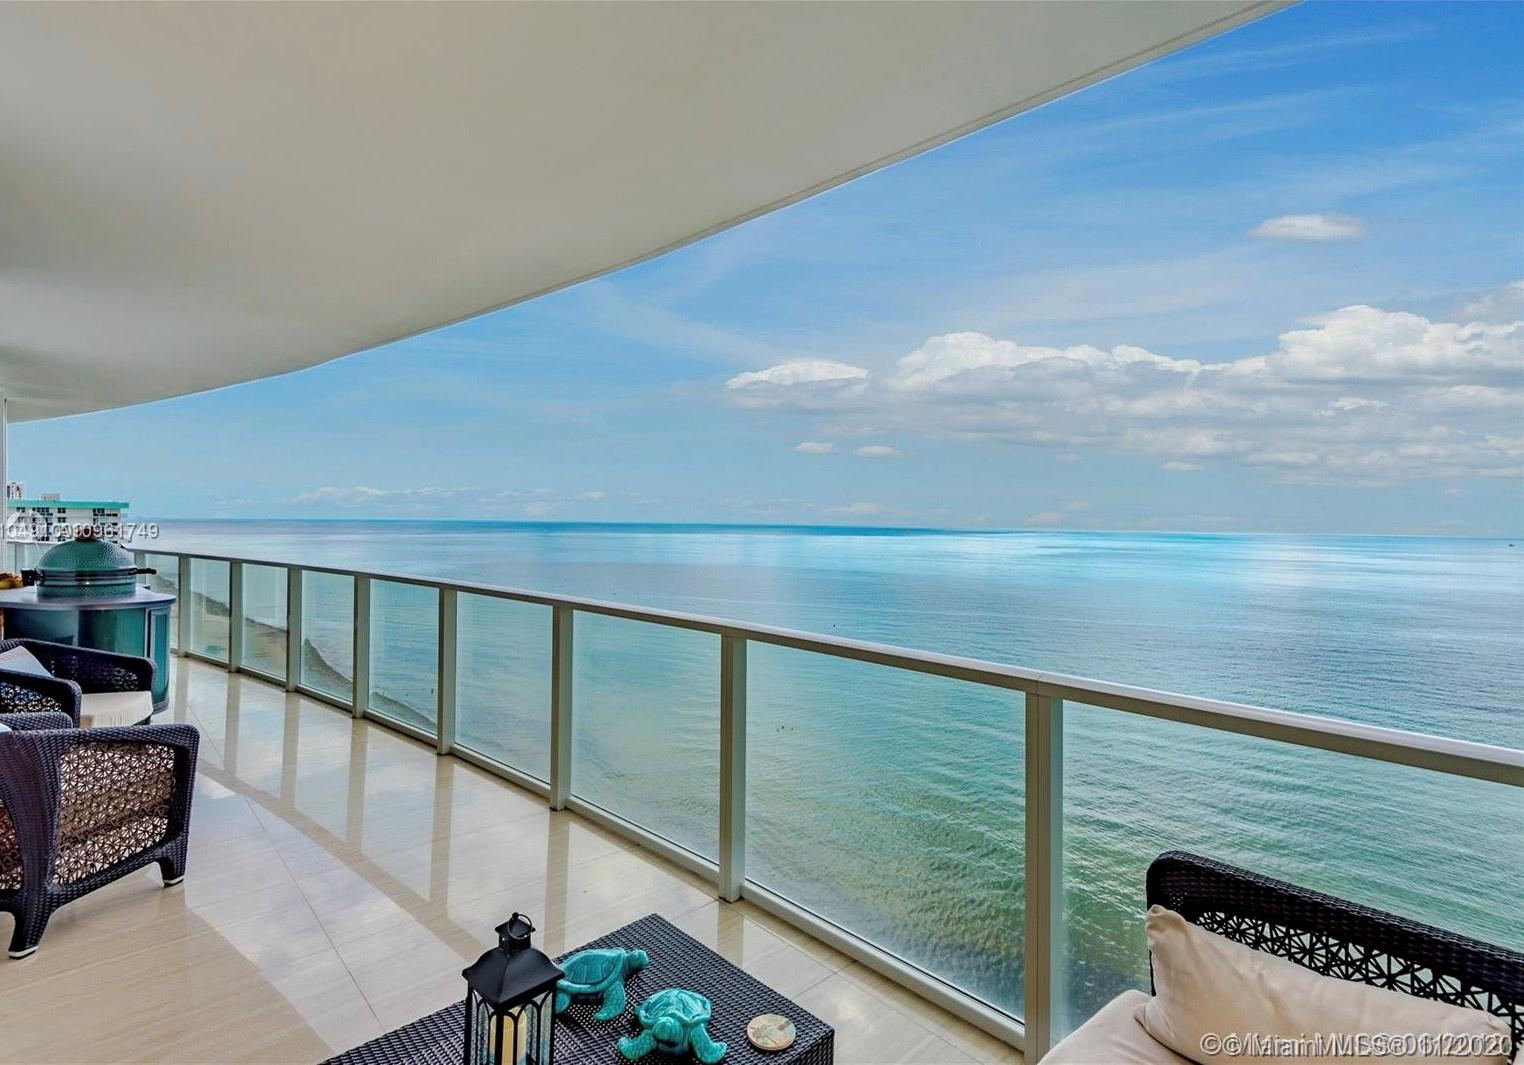 OFFERED TURNKEY. EXTRAORDINARY ,BEAUTIFUL AND UNIQUE UNIT ALL DECORATED AND FINISHED BY THE WELL-KNOWN DESIGNER STEVEN G. FABULOUS FLOW-THROUGH 4BED+DEN/4.5BATHS PRIVATE RESIDENCE WITH BREATHTAKING, UNOBSTRUCTED, DIRECT OCEAN VIEWS FROM THE LIVING,DINING, KITCHEN, MASTER, 2ND AND 3RD BEDROOMS +SPECTACULAR INTRACOASTAL AND CITY VIEWS FROM 4TH BEDROOM AND DEN AS WELL.Pool with attendants, state of the art gym, playroom,private beach attendants. IT IS A MUST SEE. READY TO MOVE IN.